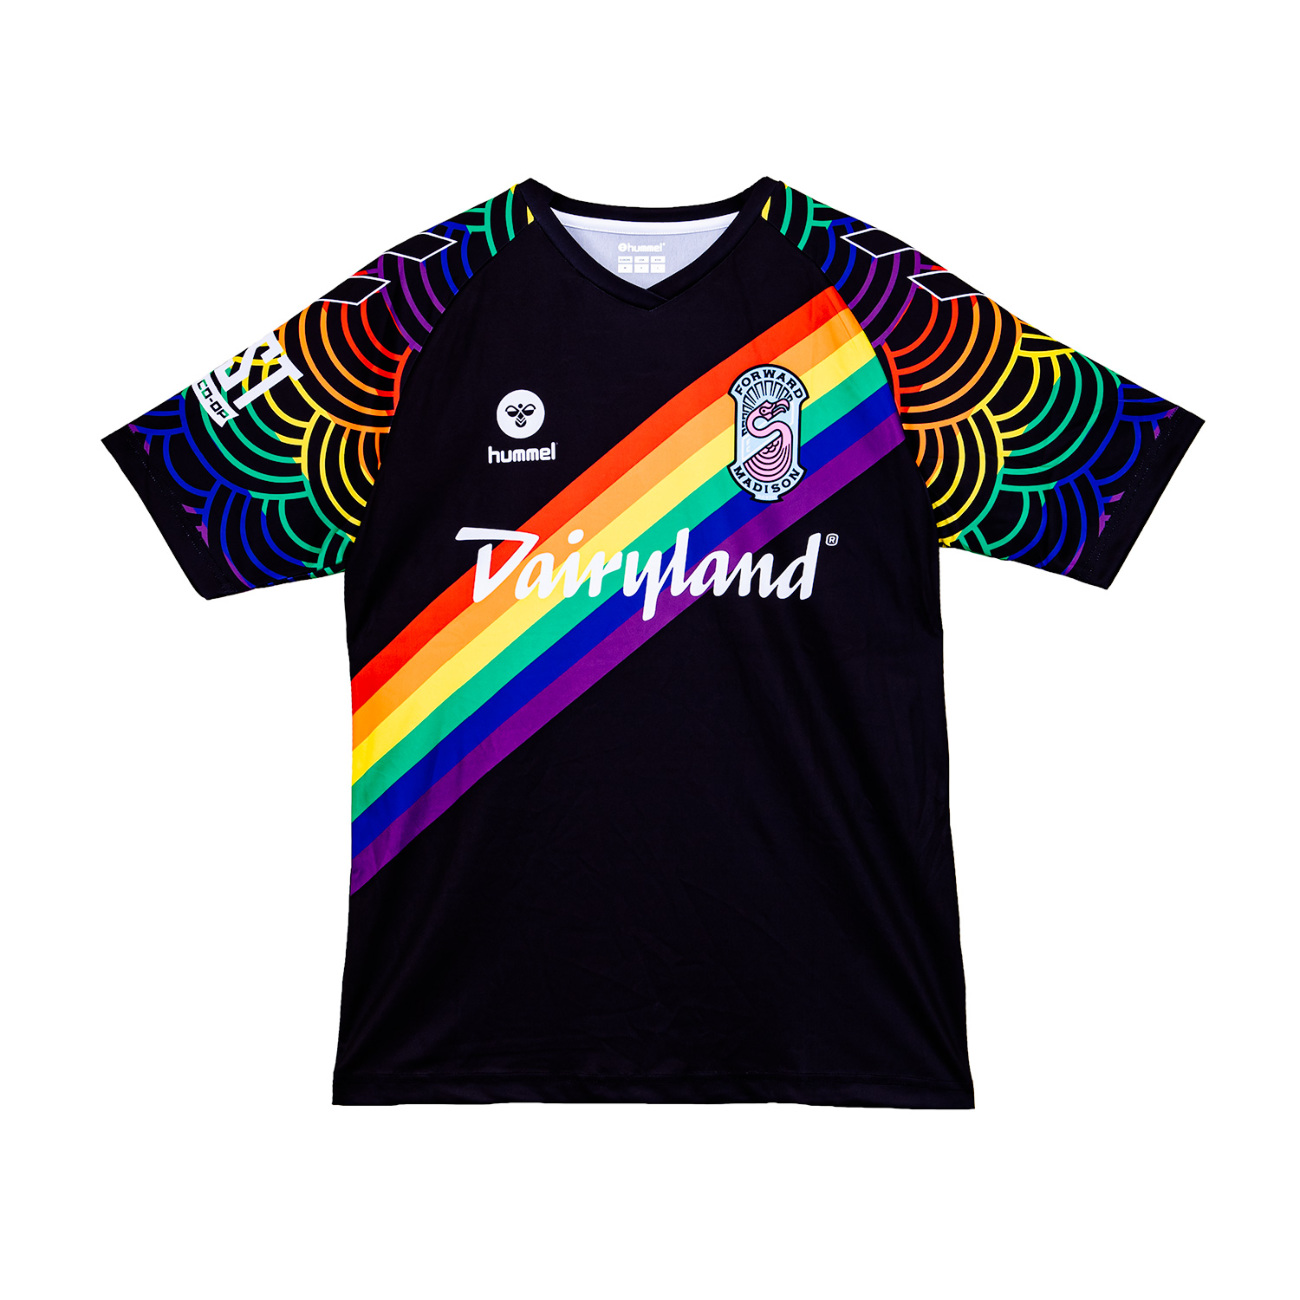 hummel-SPORTS FORWARD MADISON 2020 PRIDE JERSEY S/S